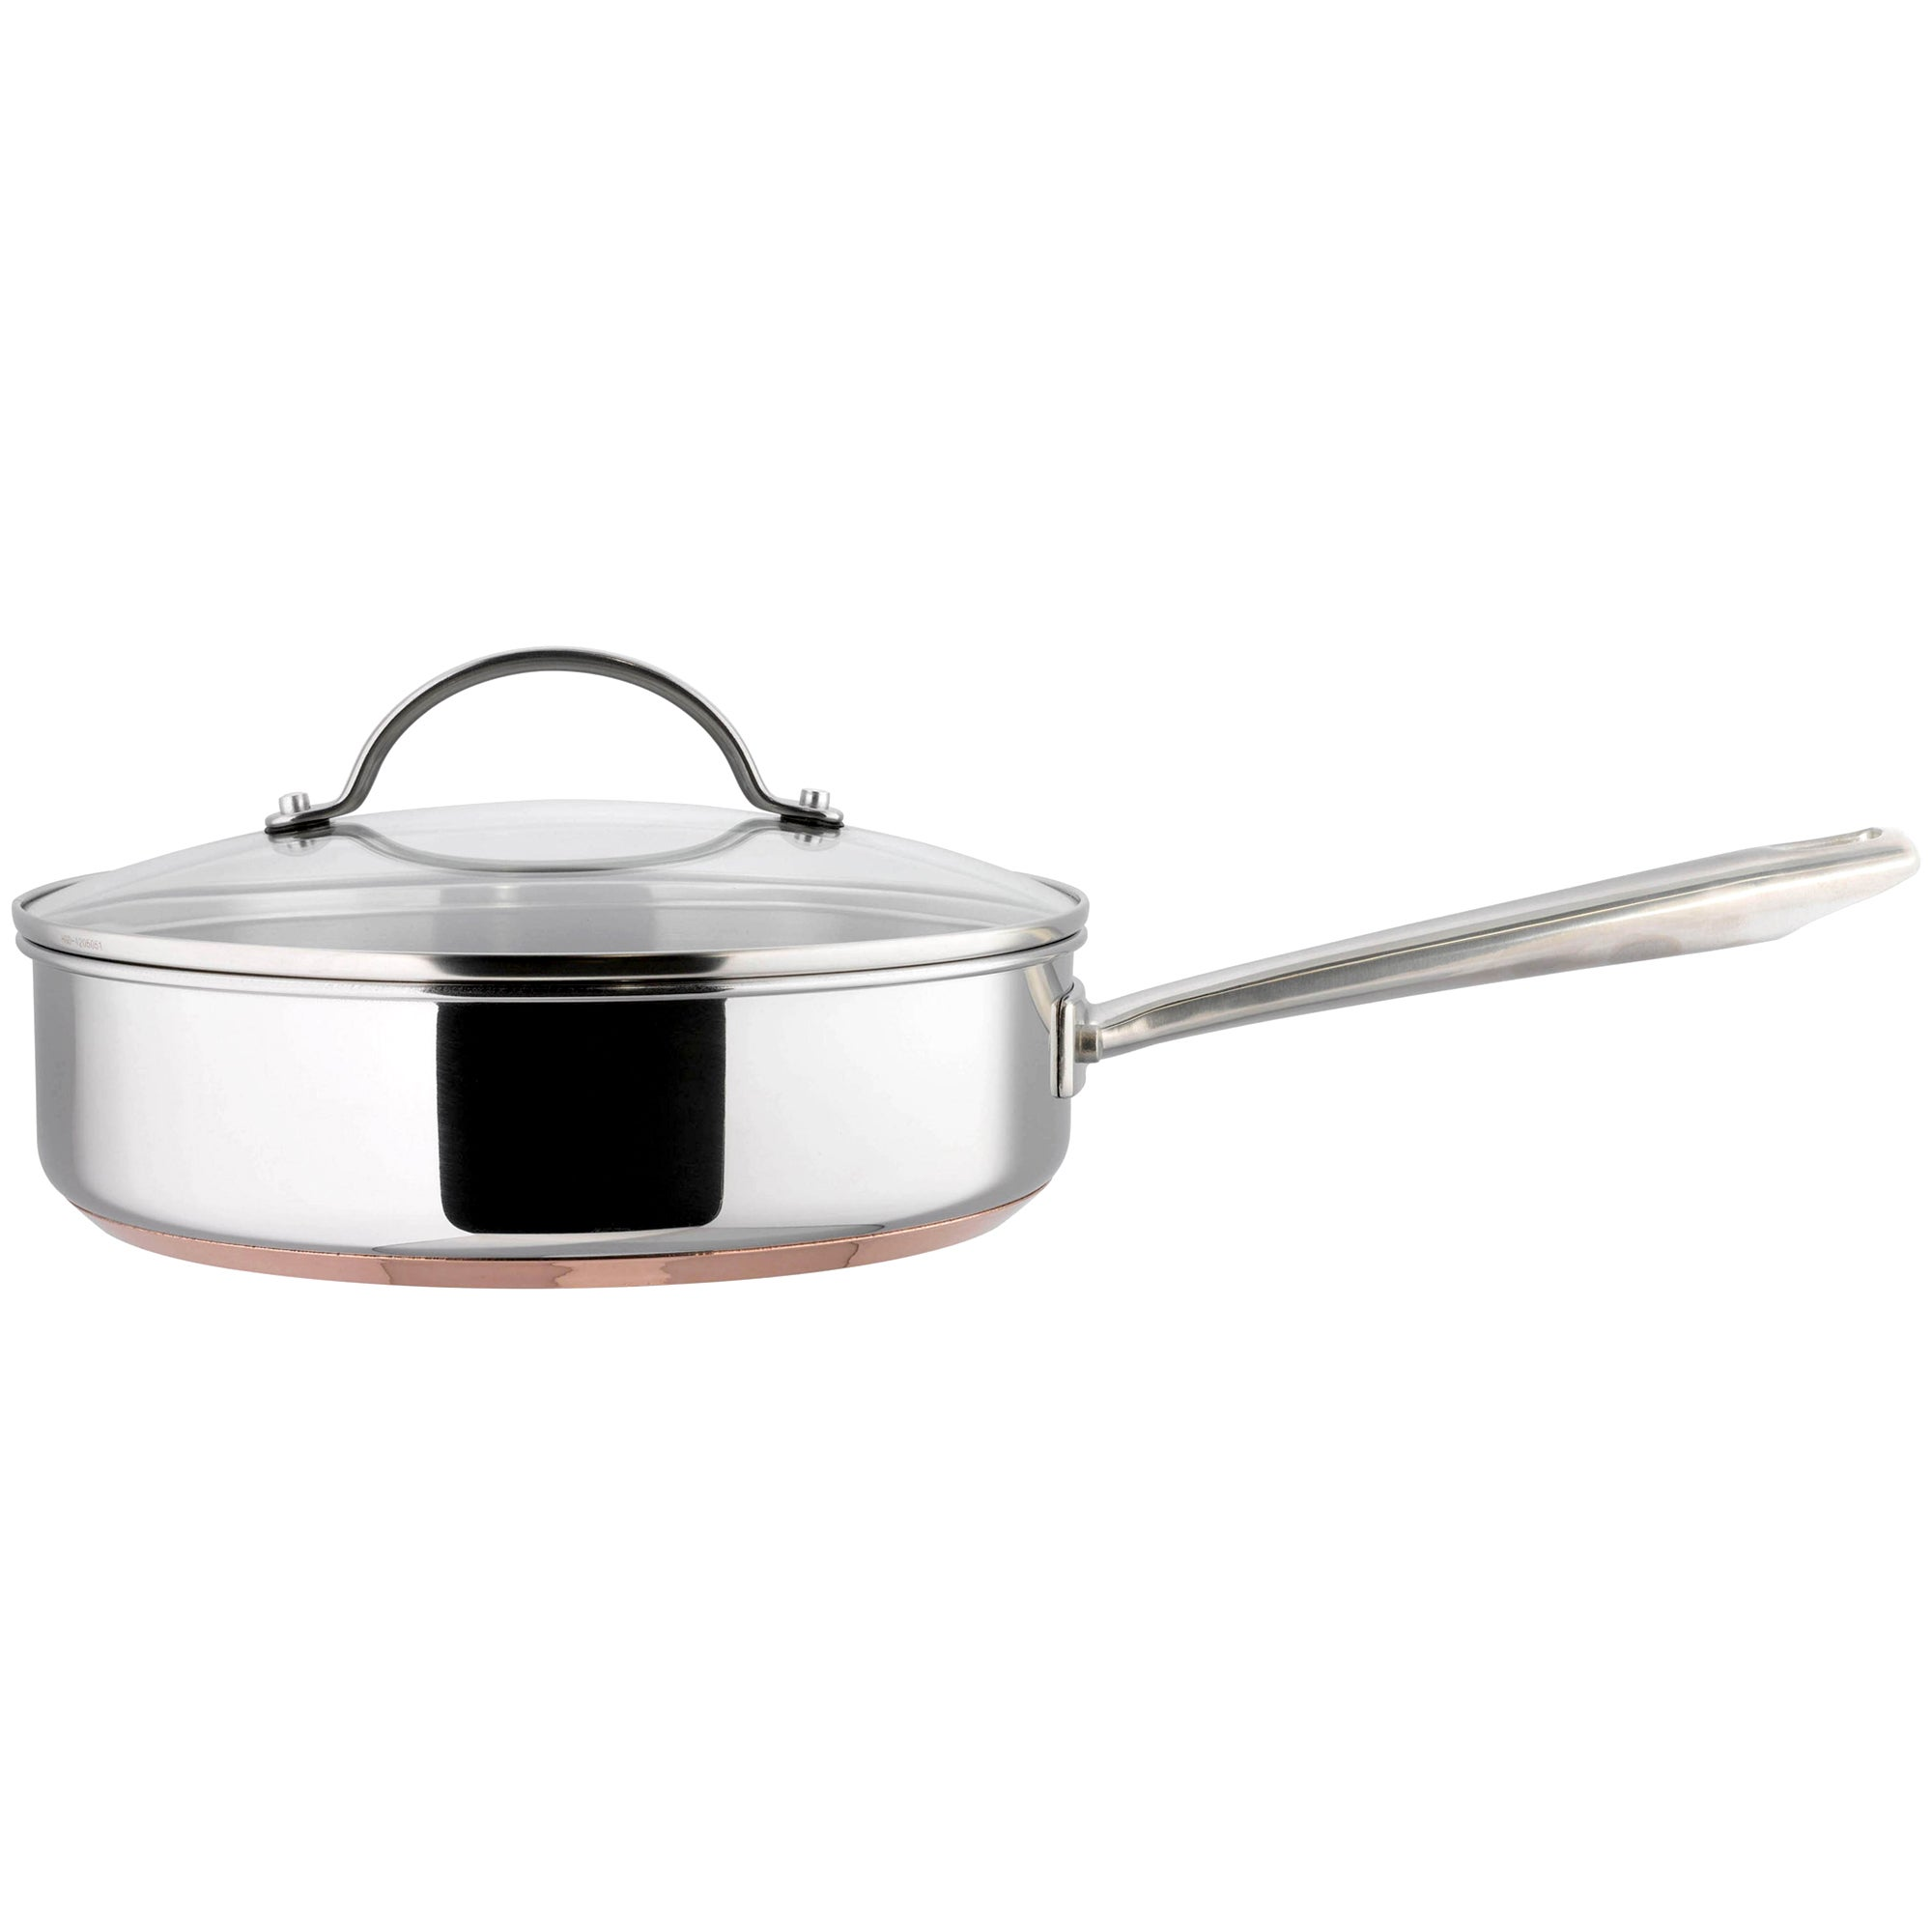 Infinity Copper Collection Saute Pan